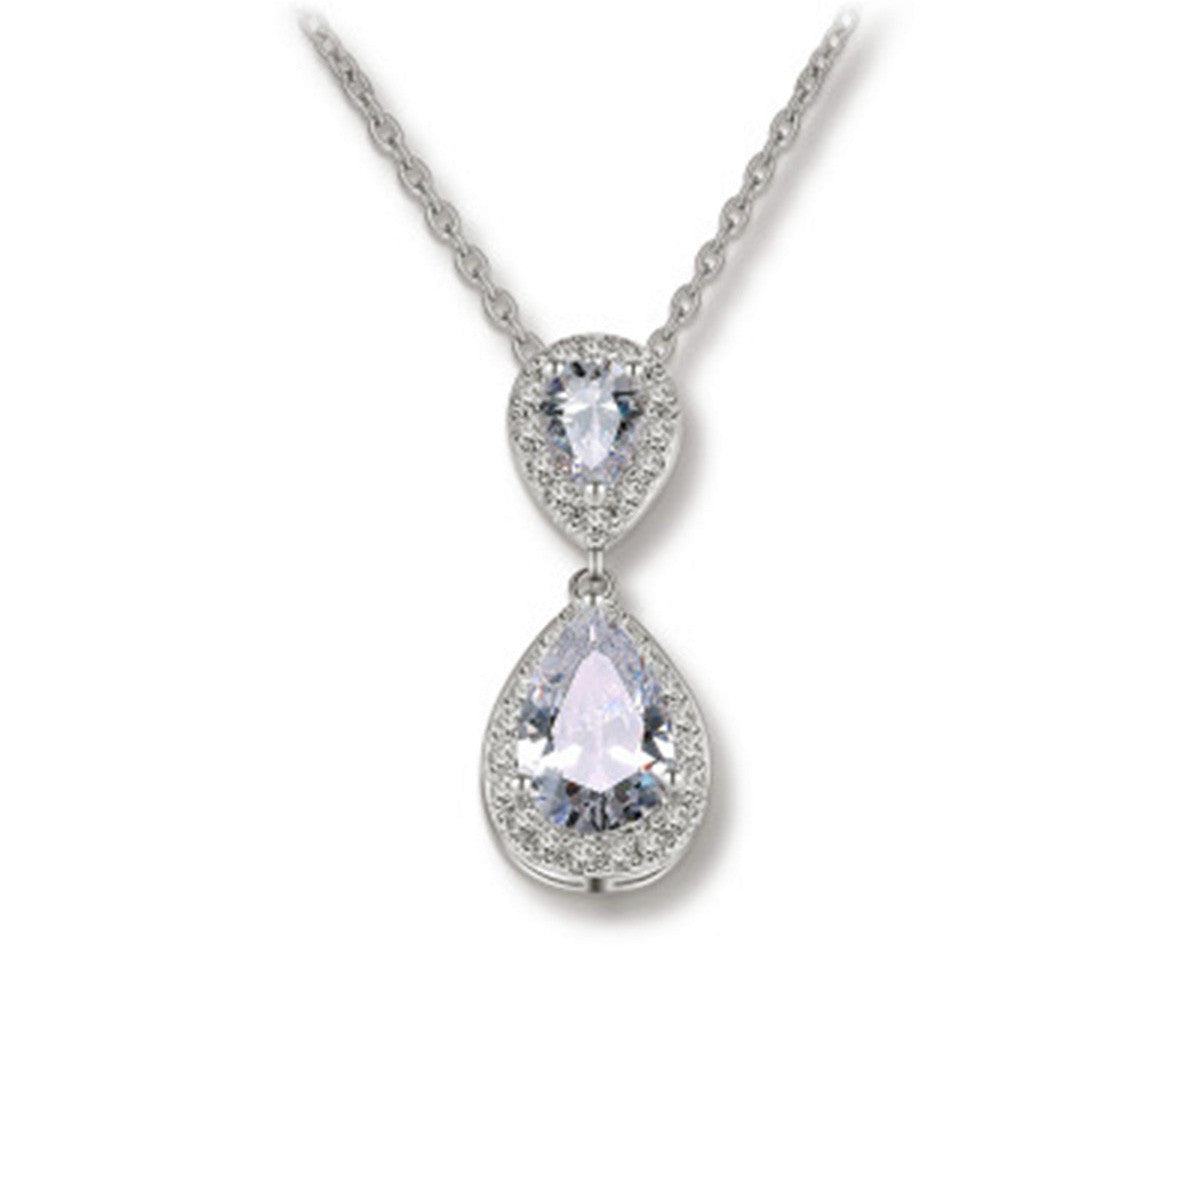 Platinum Plated Pear-Shaped Cubic Zirconia Teardrop Bridal Necklace Pendant